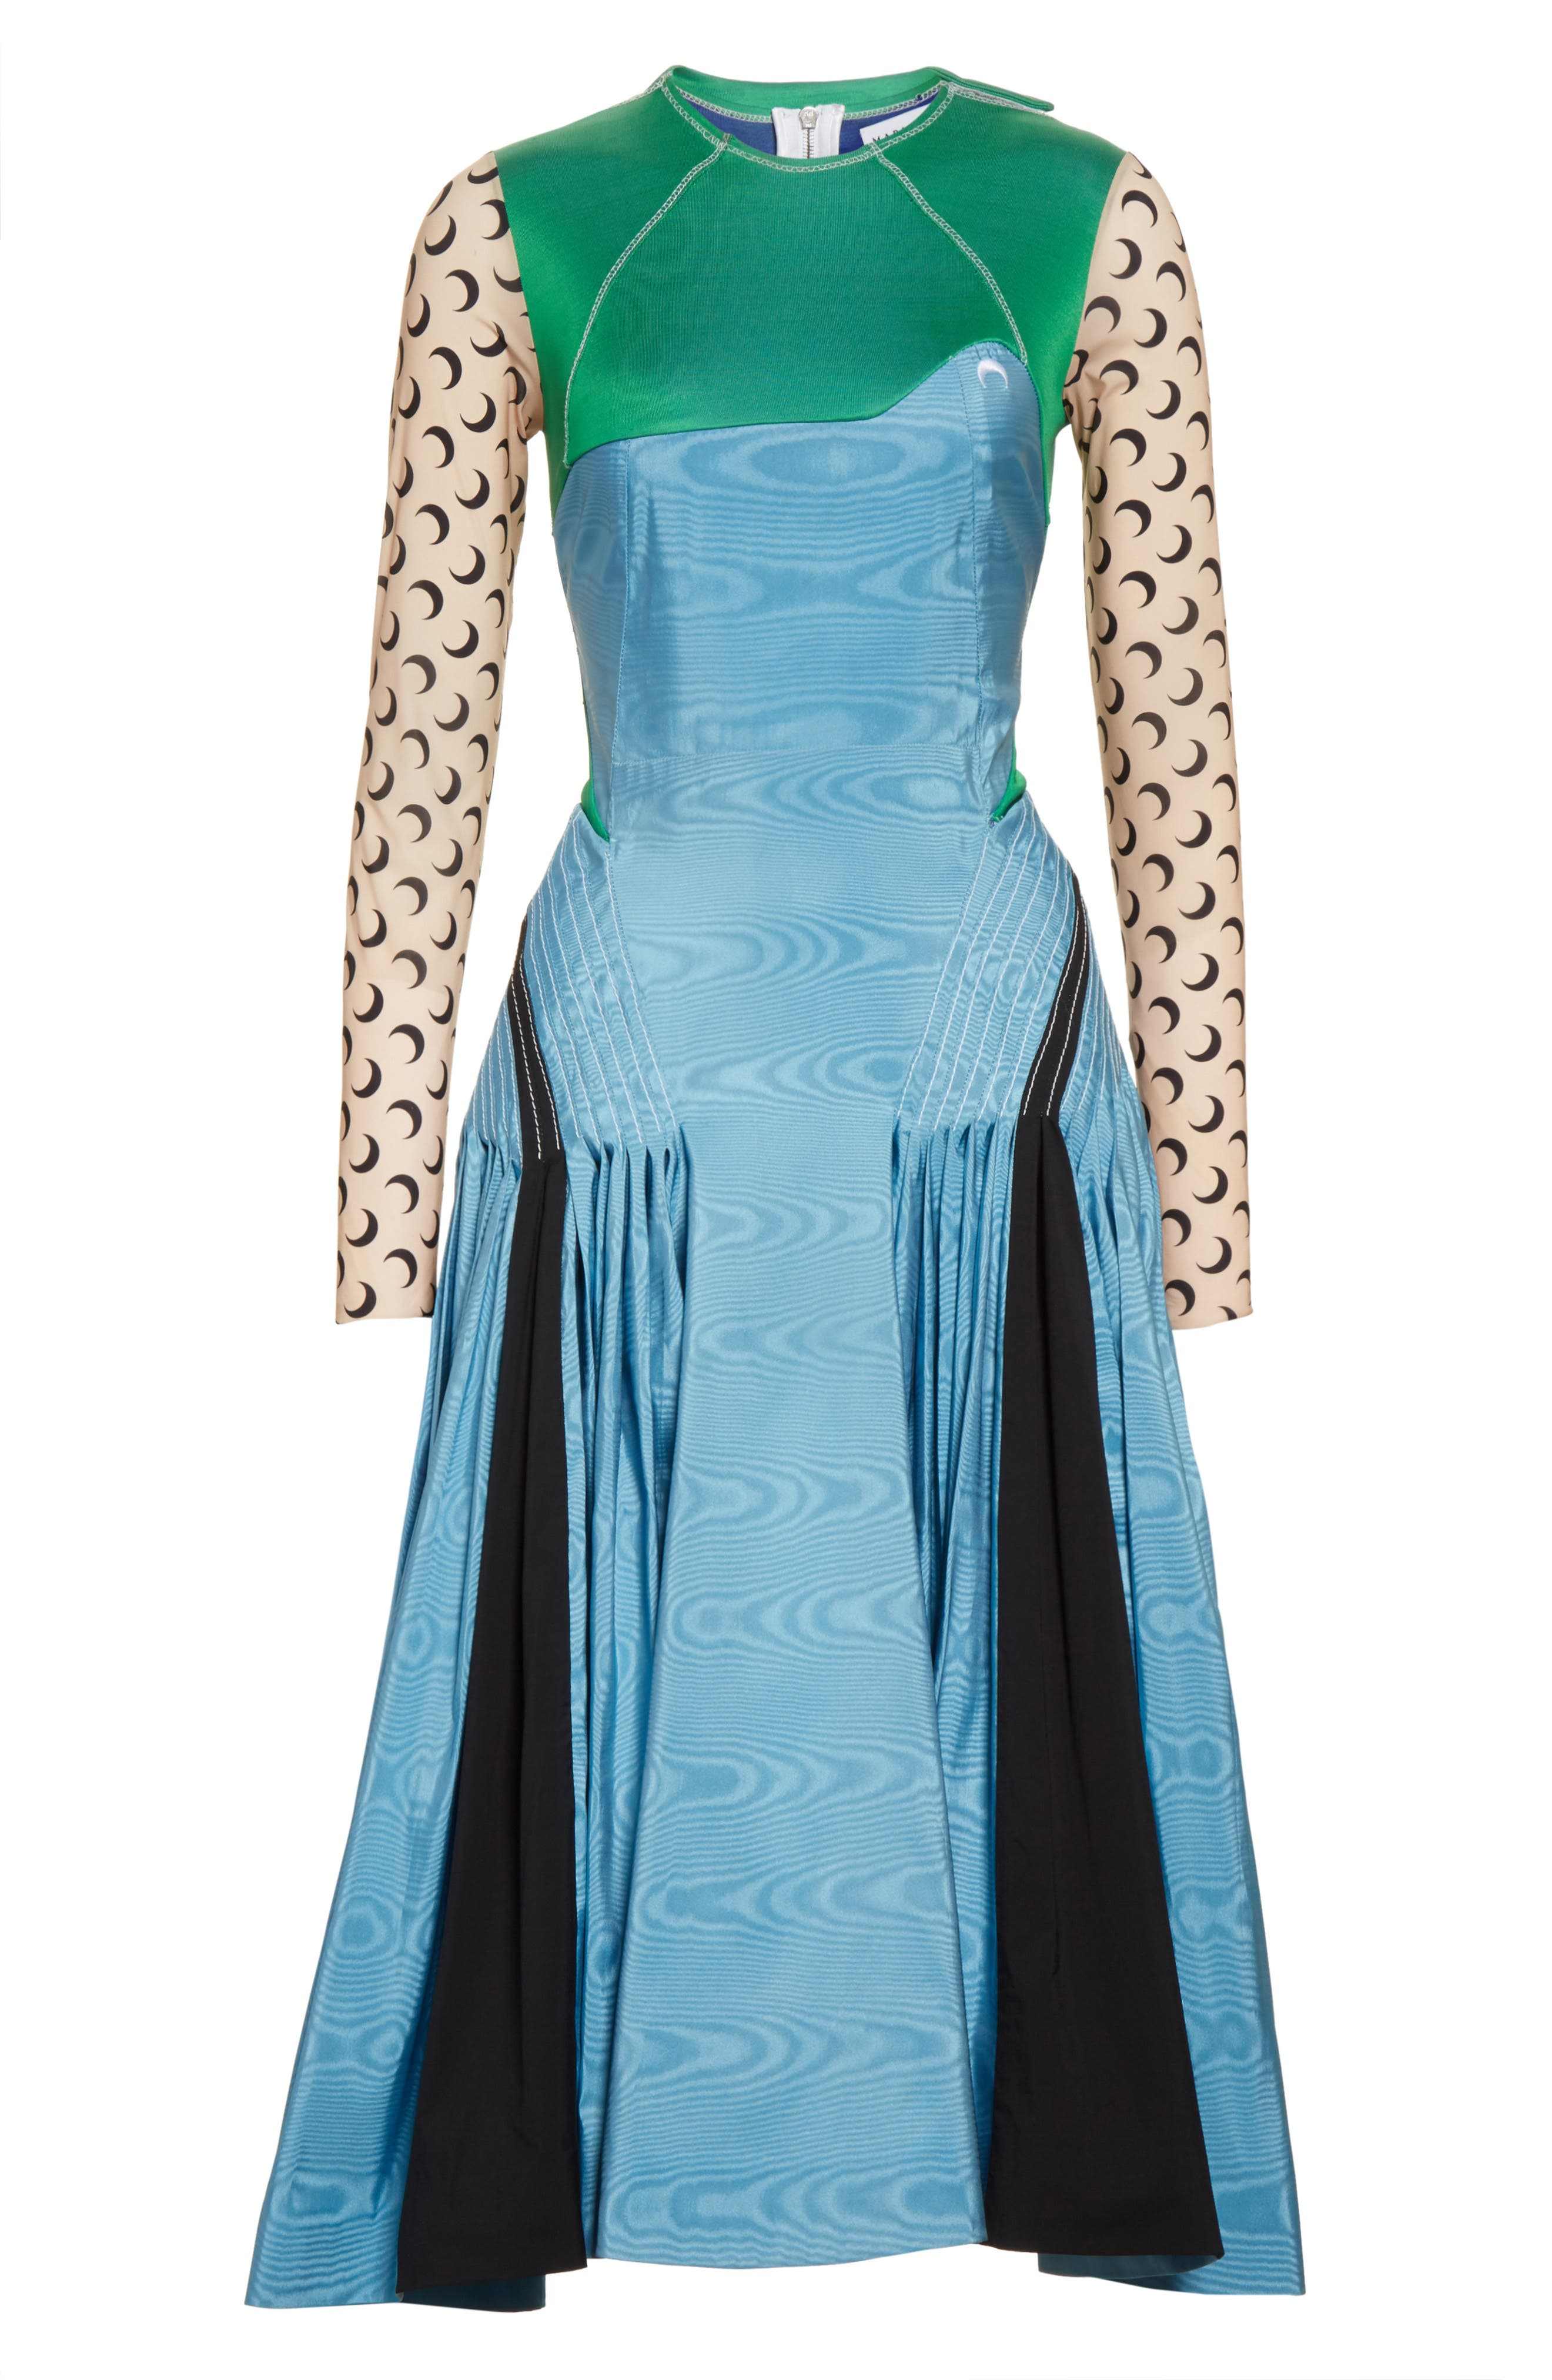 Pleated Moiré Dress,                             Alternate thumbnail 8, color,                             Blue Green Black